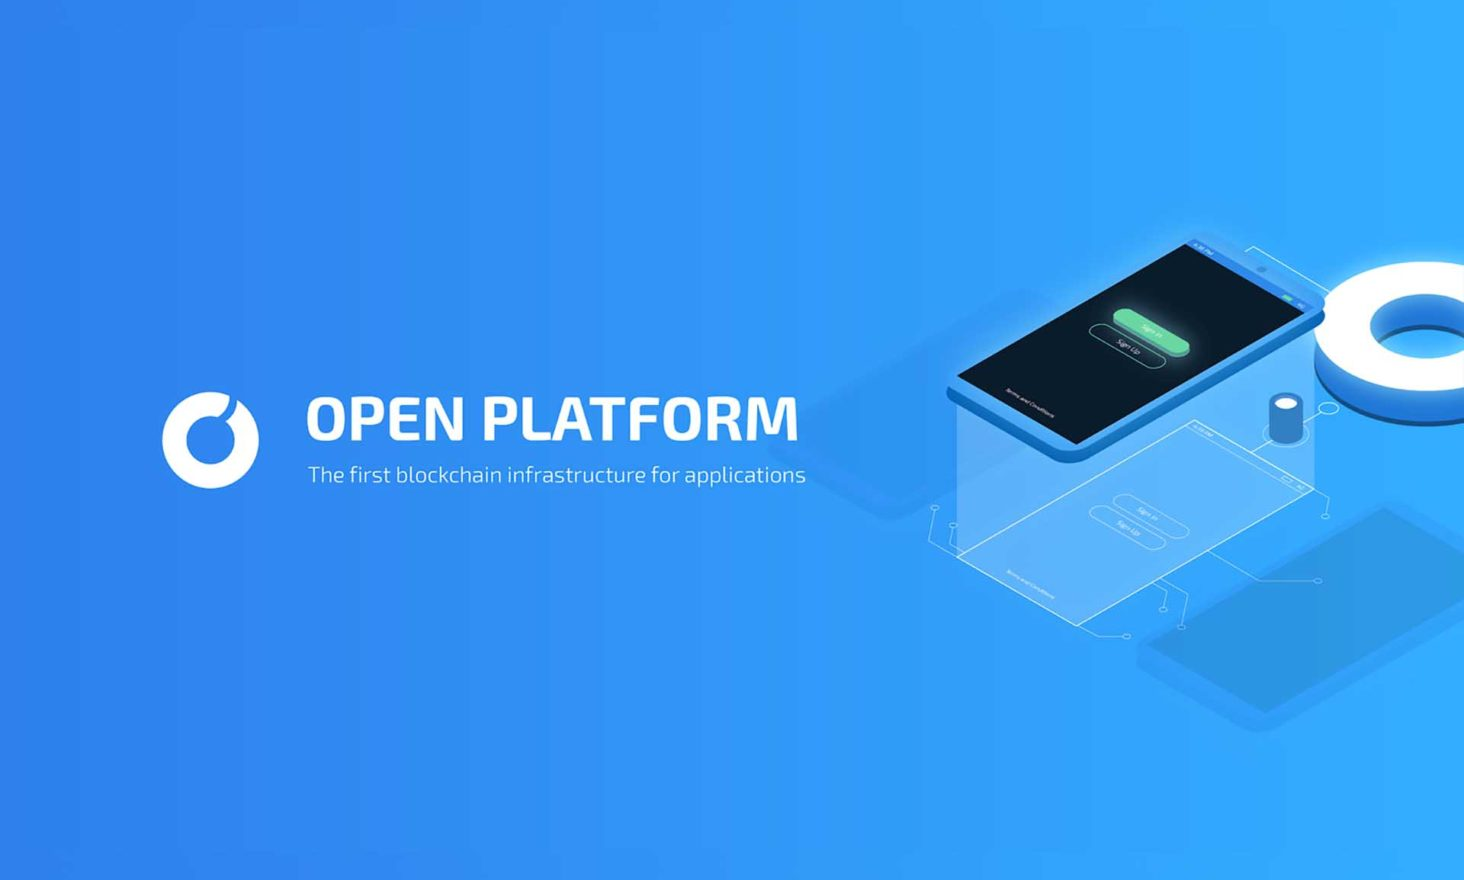 OPEN Announces Partnership with Kucoin